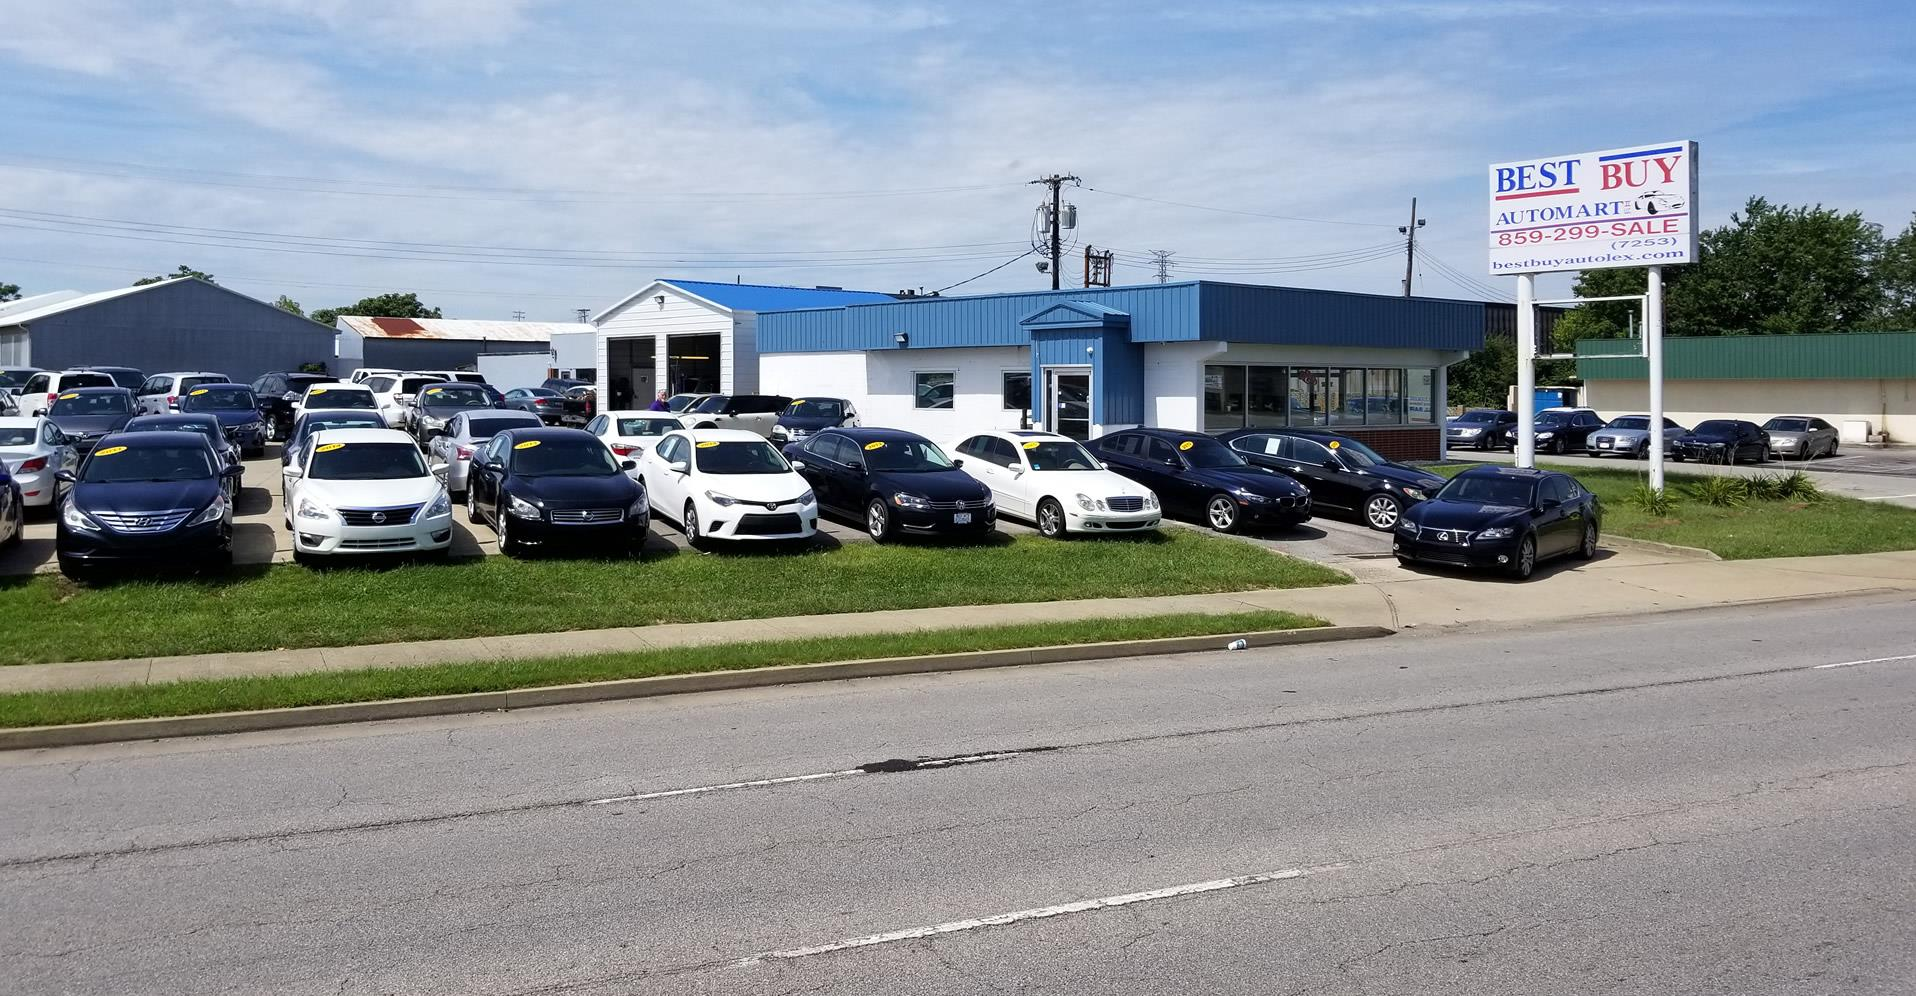 Used Trucks For Sale In Ky >> Used Cars Lexington Ky Used Cars Trucks Ky Best Buy